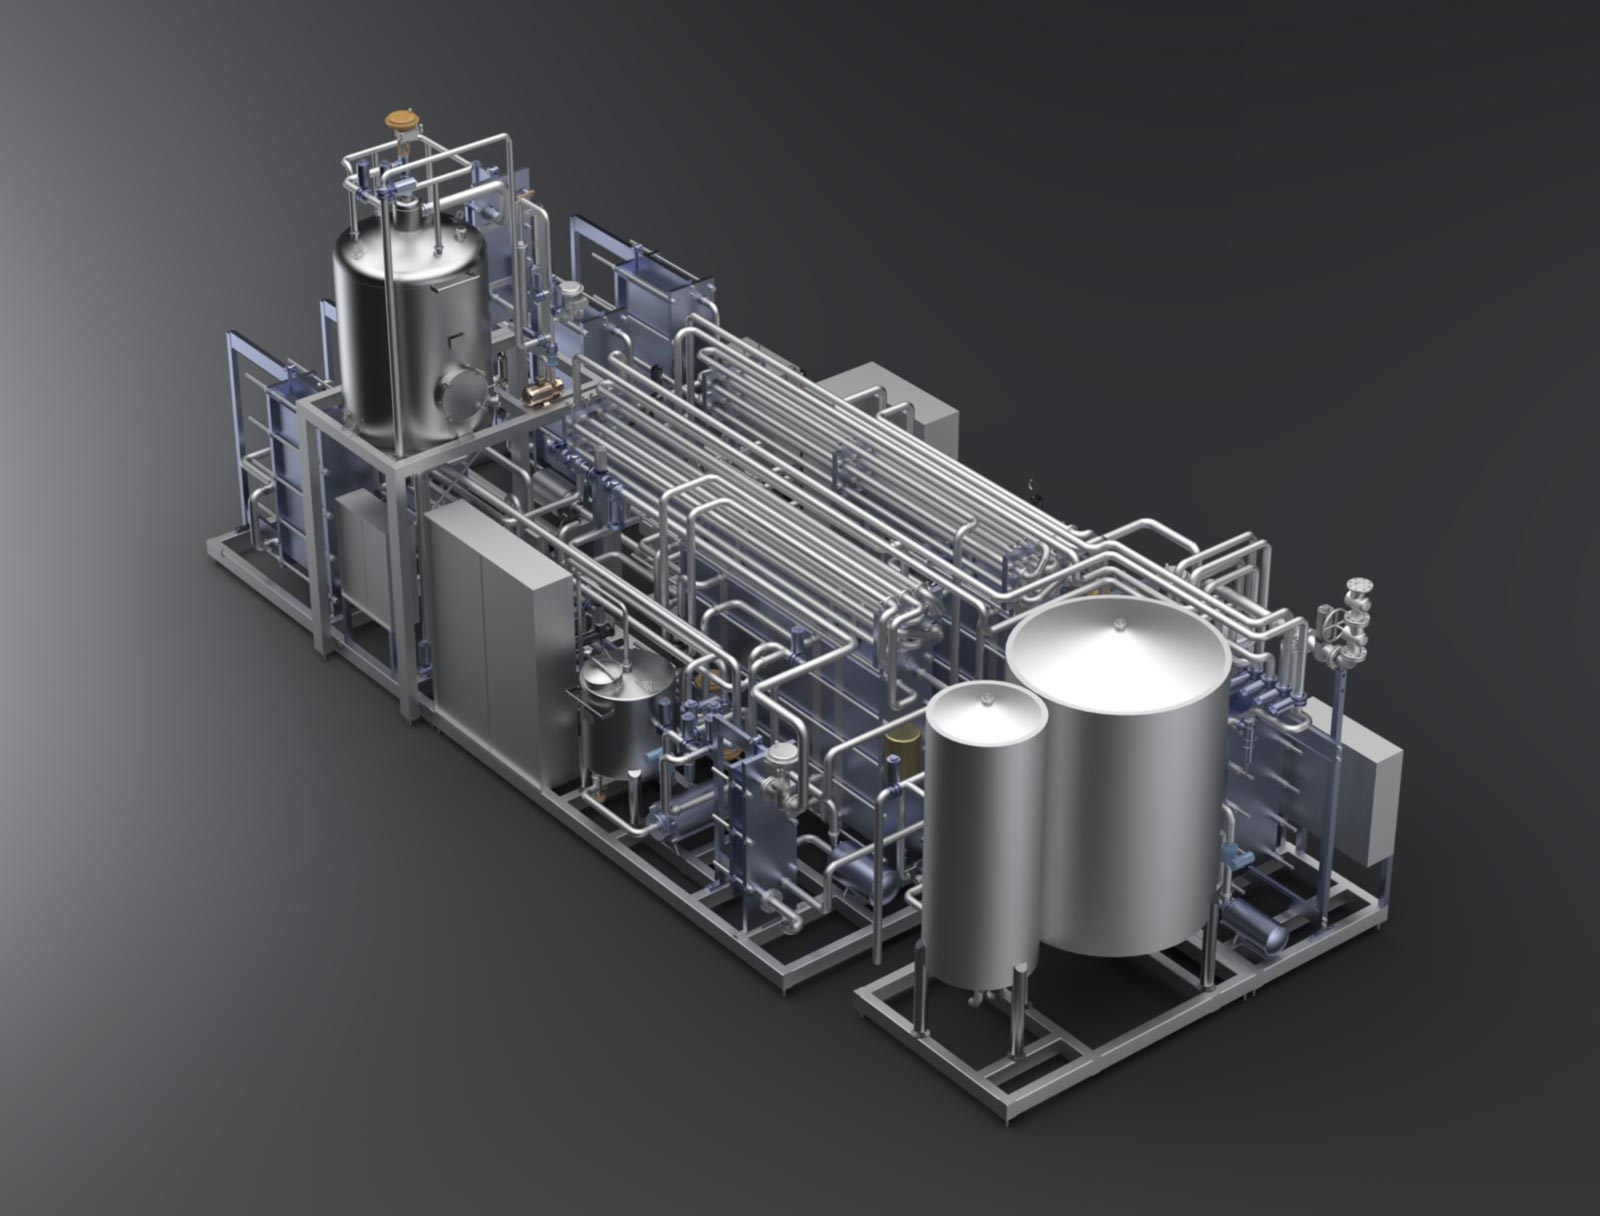 Product picture of pasteurizing systems